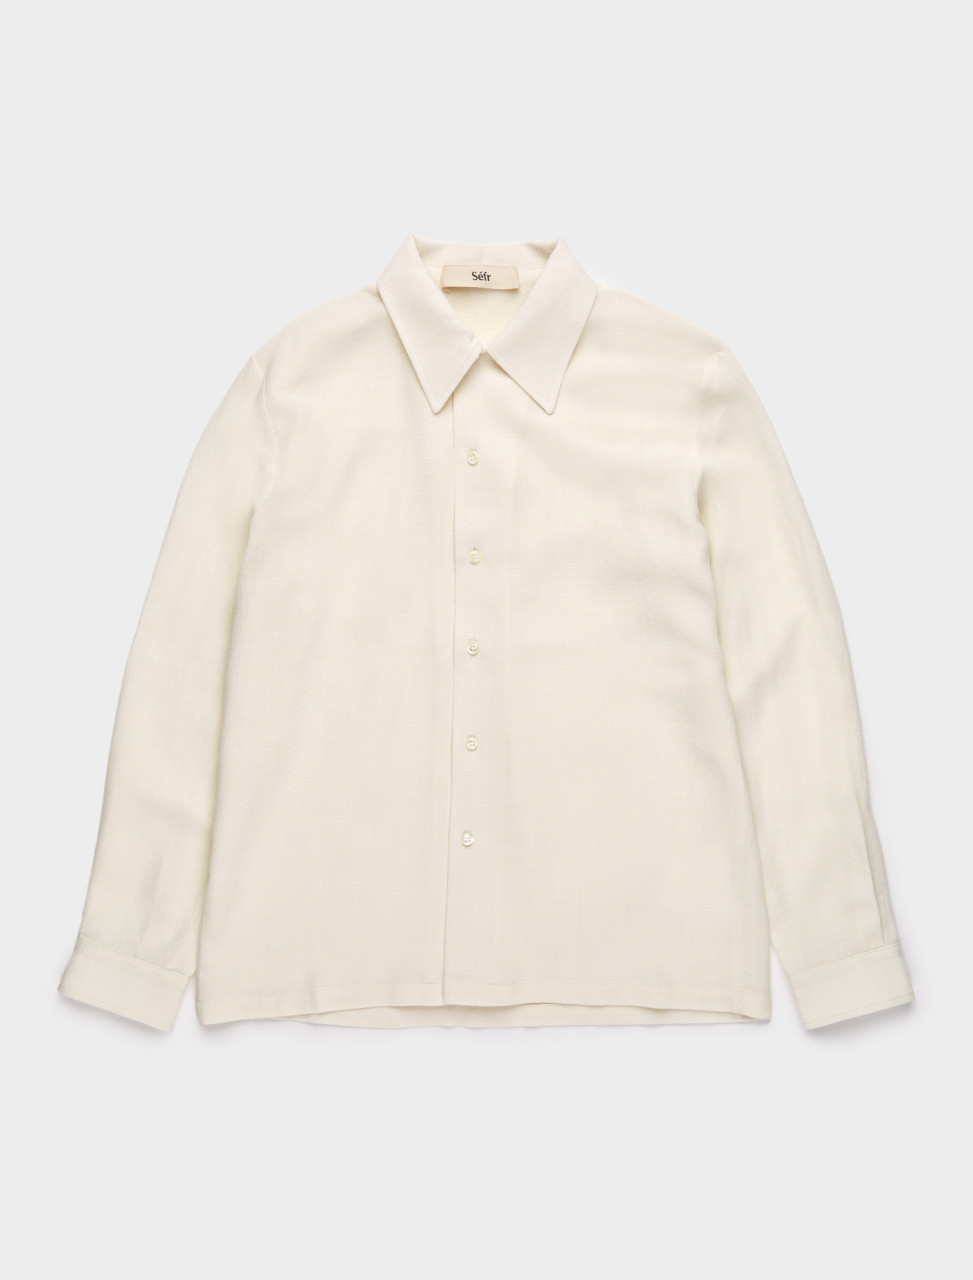 271-RS-OW SÉFR RAMPOUA SHIRT IN OFF WHITE